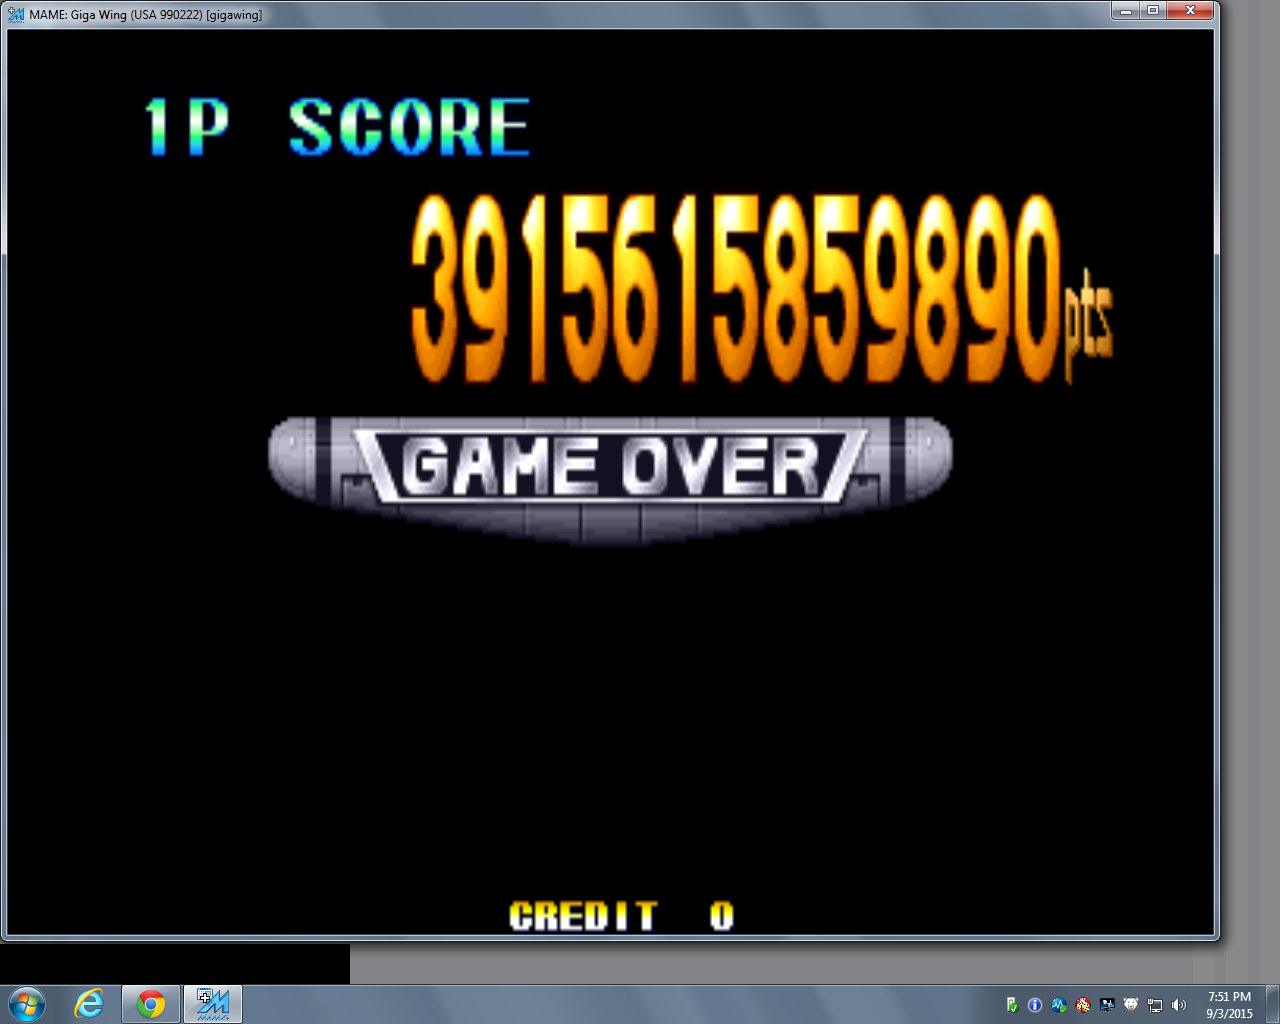 bubufubu: Giga Wing [gigawing] (Arcade Emulated / M.A.M.E.) 3,915,615,859,890 points on 2015-11-06 19:32:02